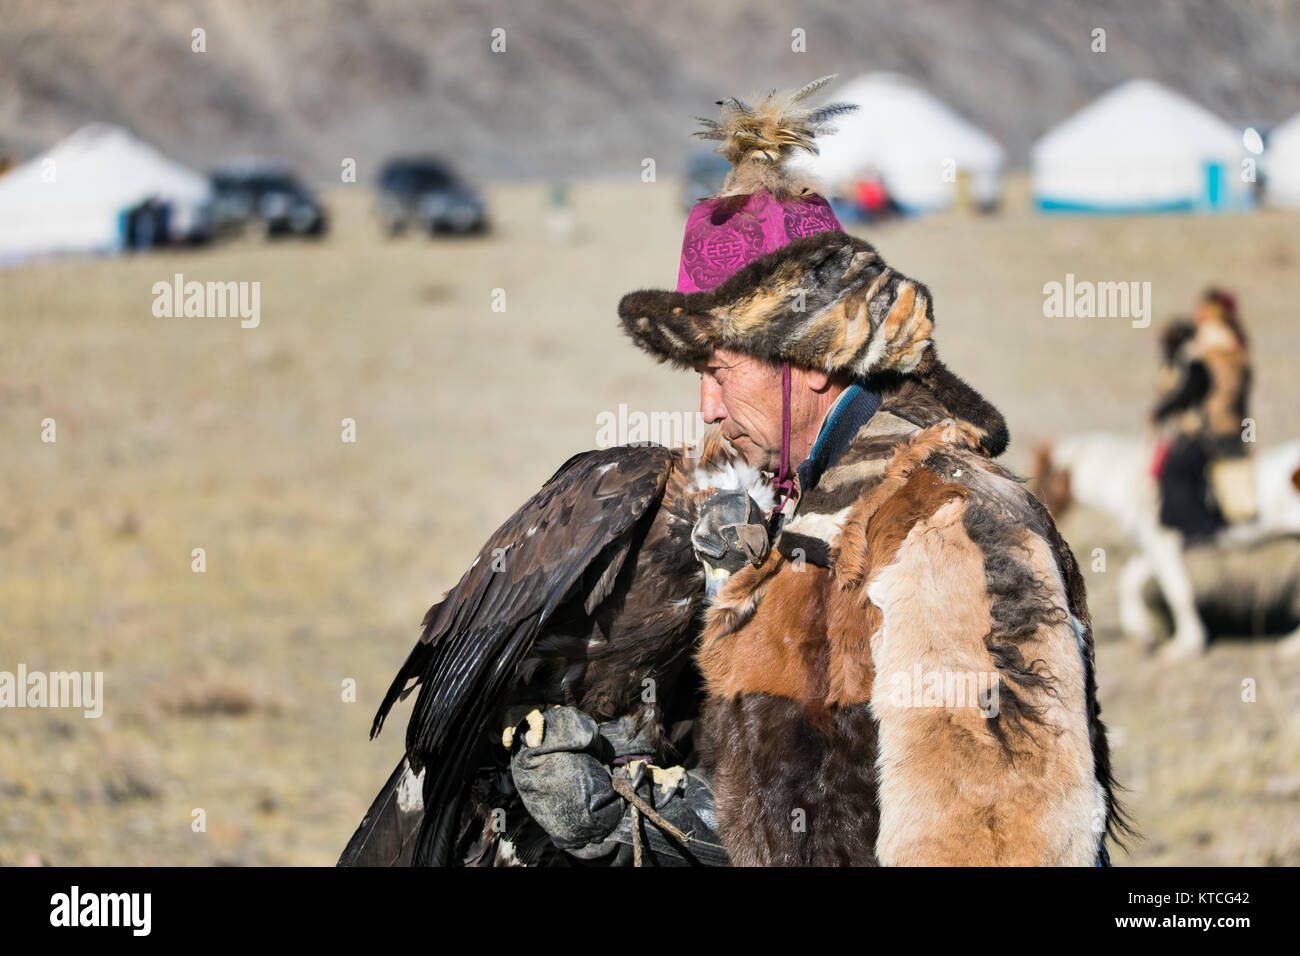 Kazakh eagle hunter spends downtime with his eagle during Golden Eagle Festival in Mongolia - Stock Image